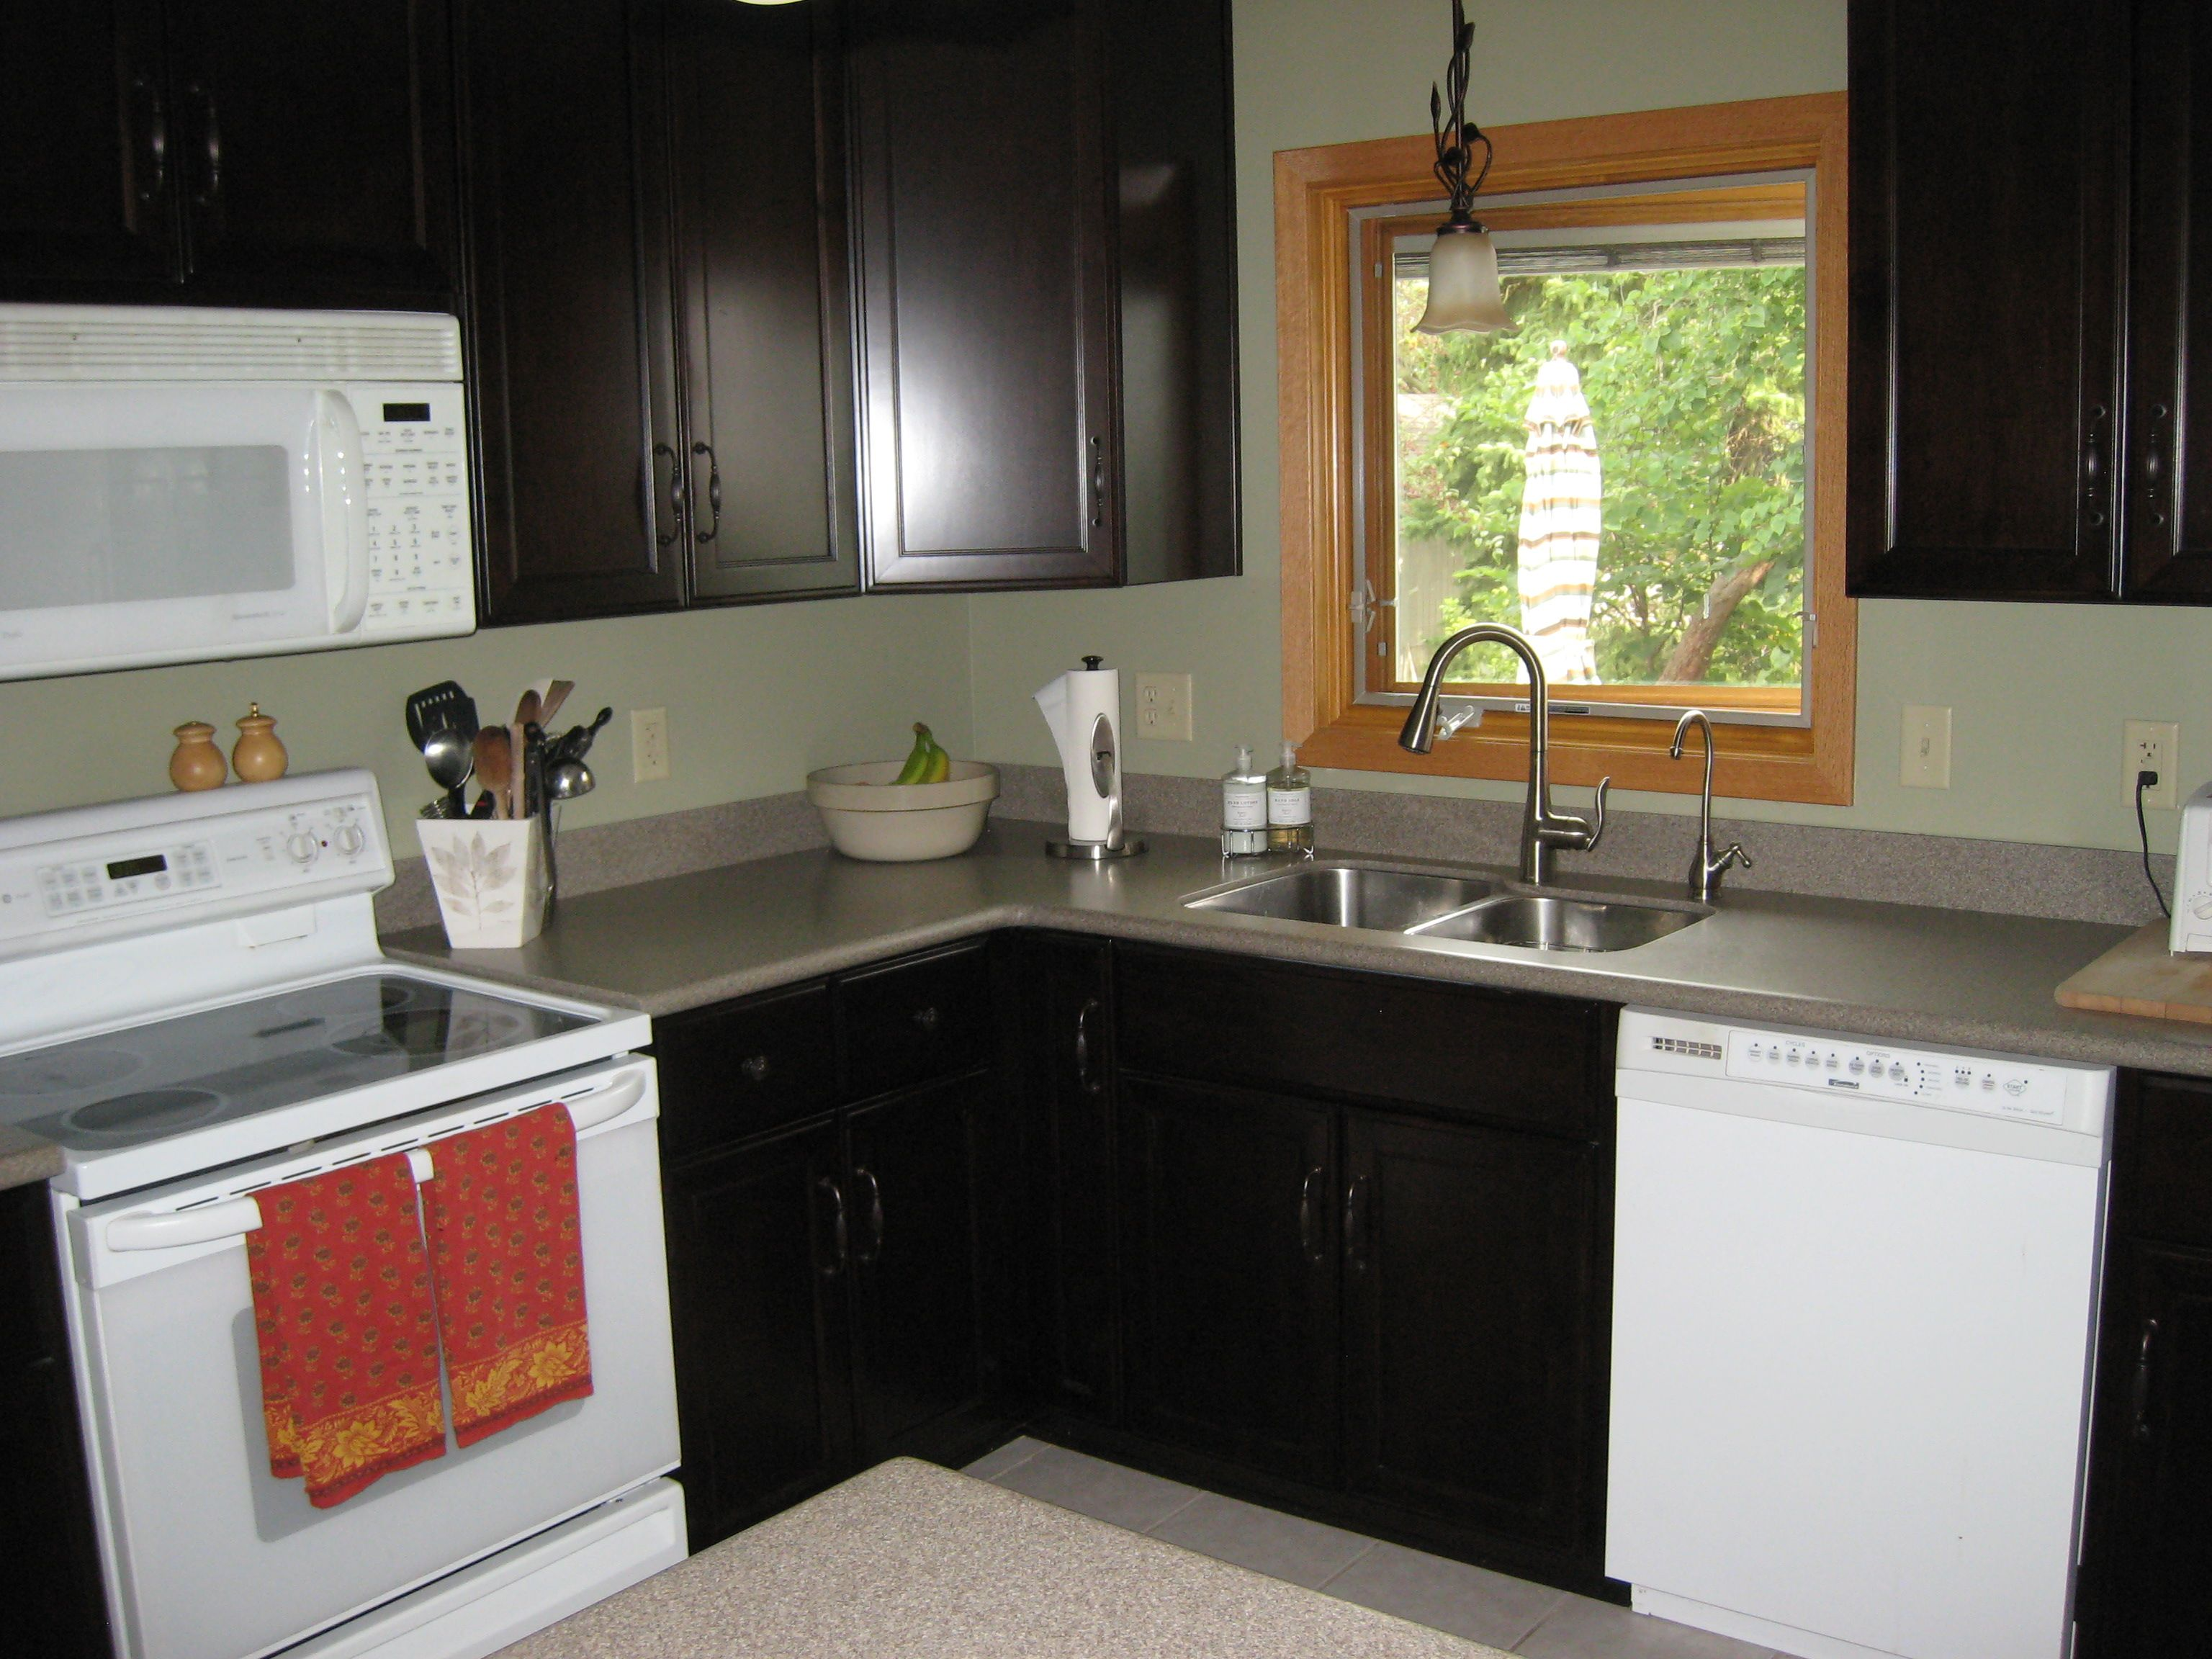 Small L Shaped Kitchens Designs Small L Shaped Kitchen Like Yours With Dark Cabinets And